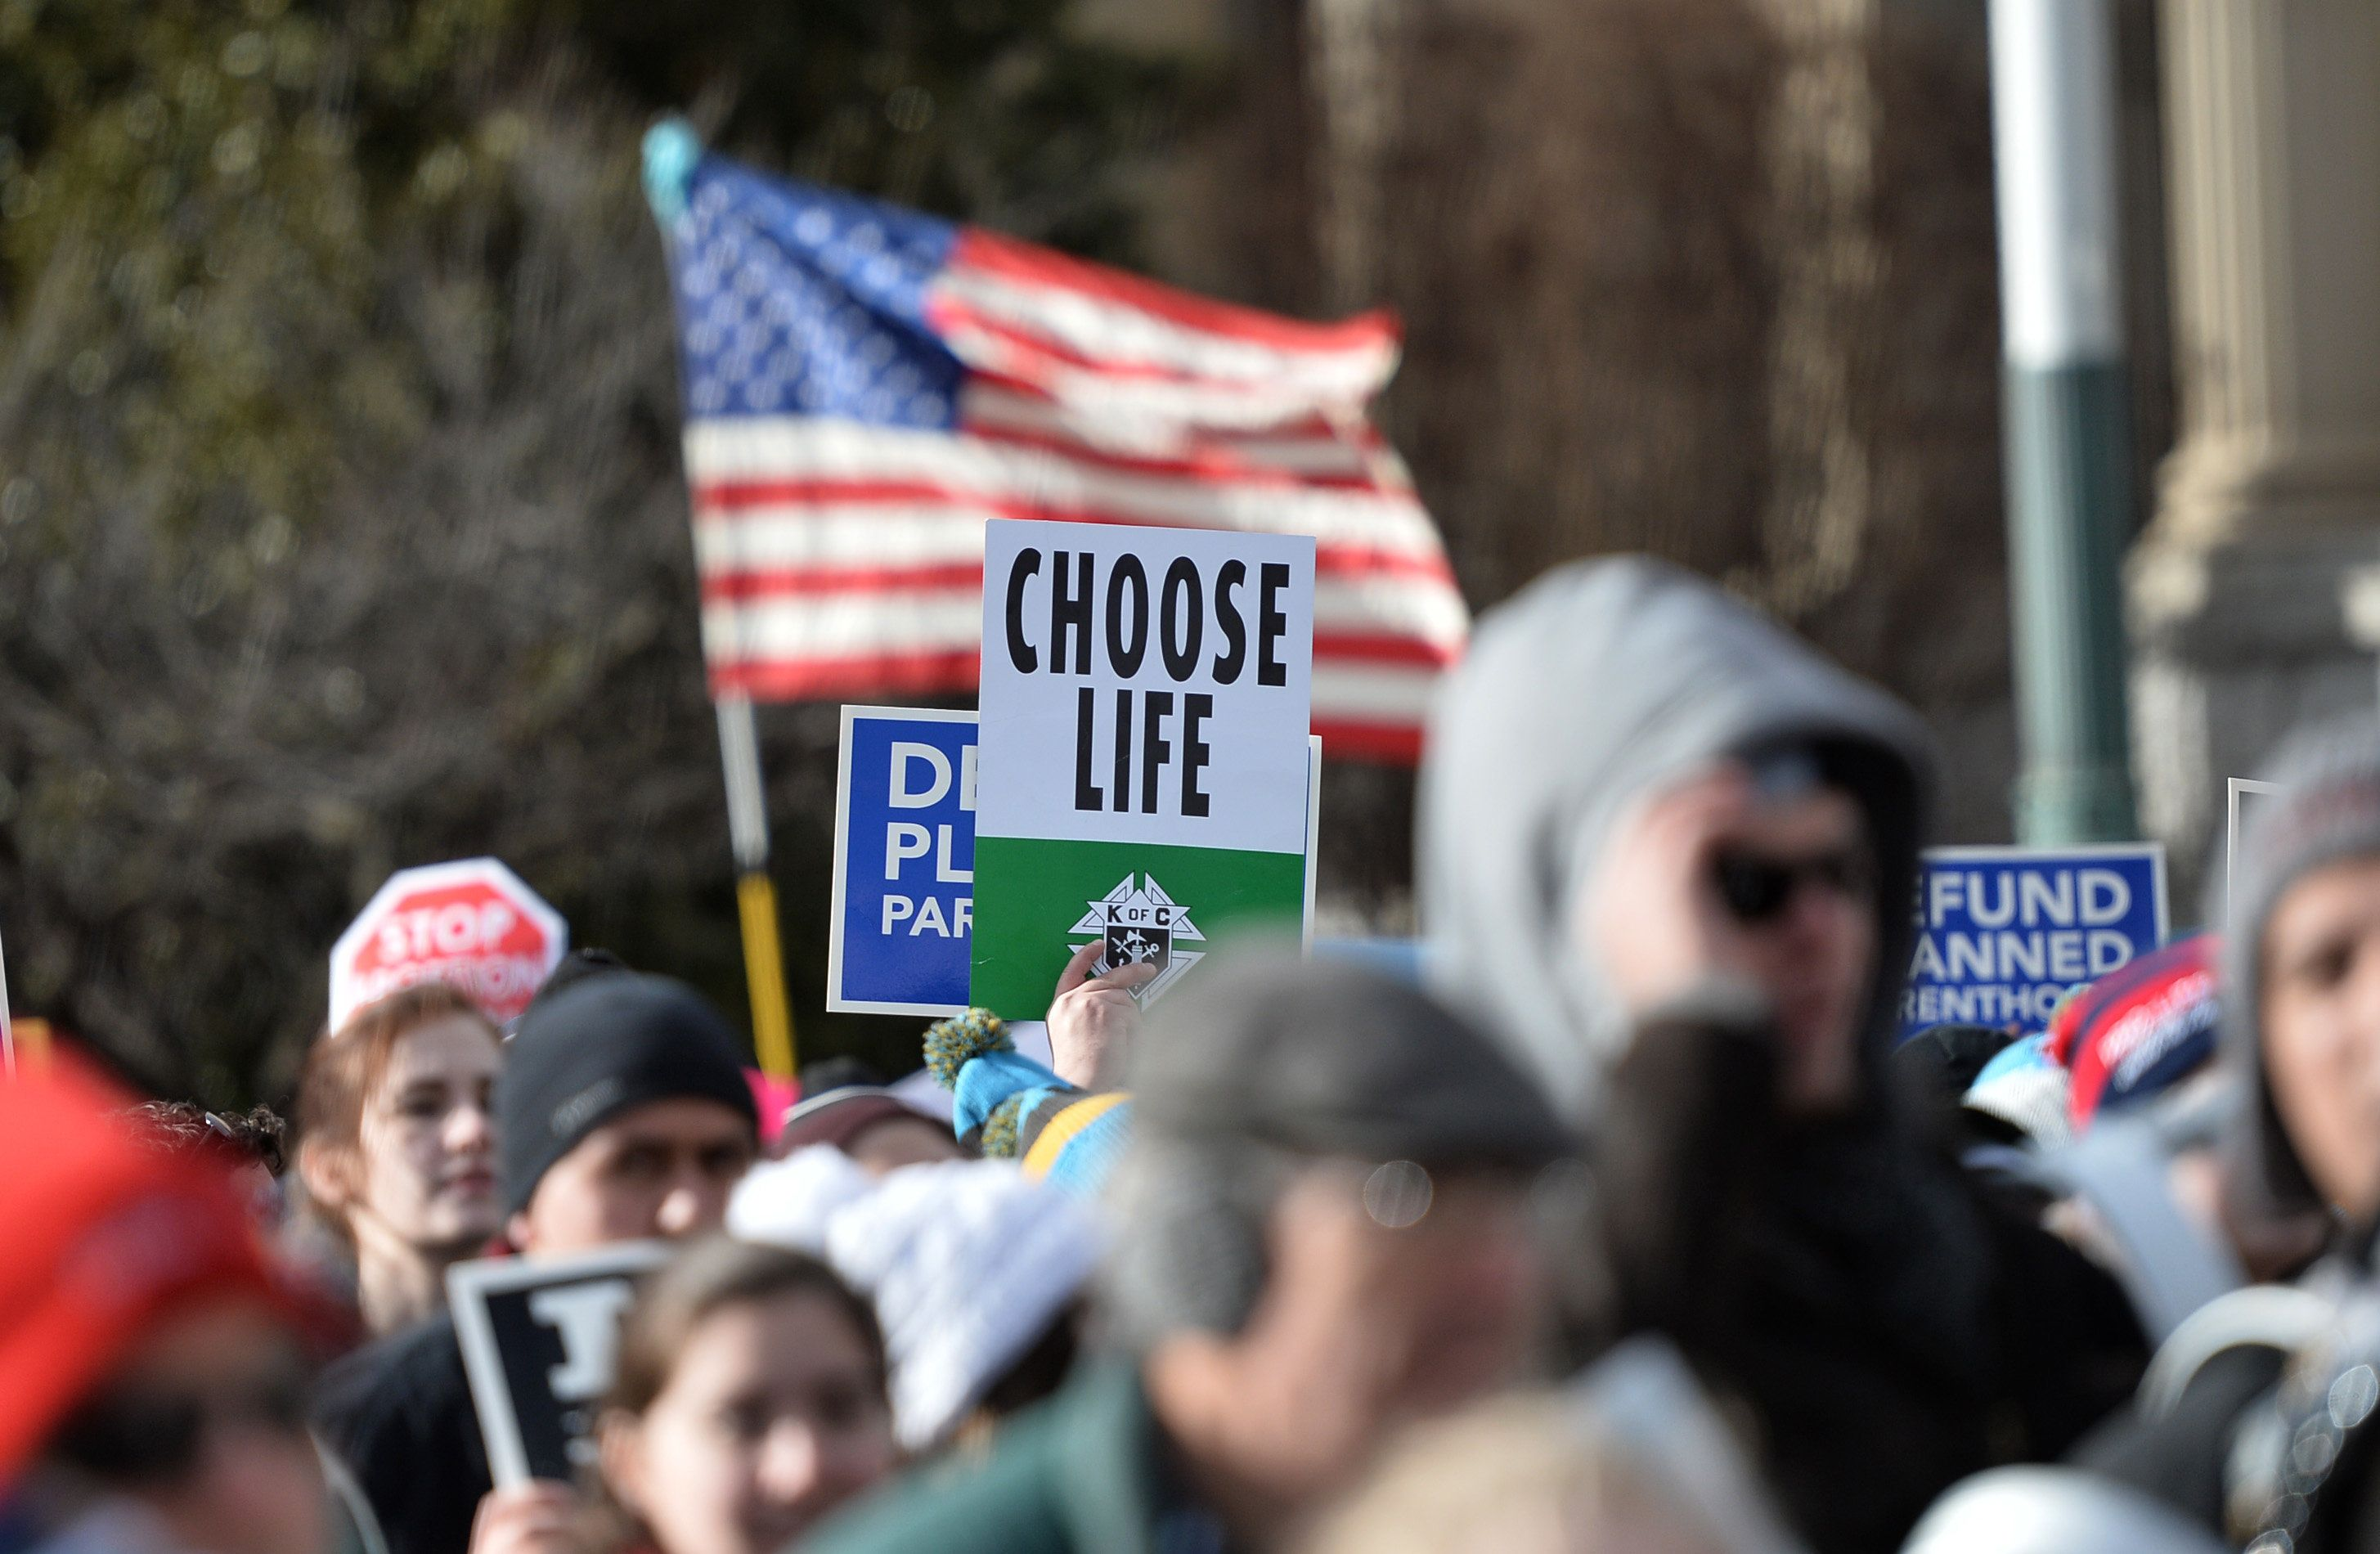 Anti-abortion protesters march in Washington, D.C., at the annual March for Life in January. Official government languag